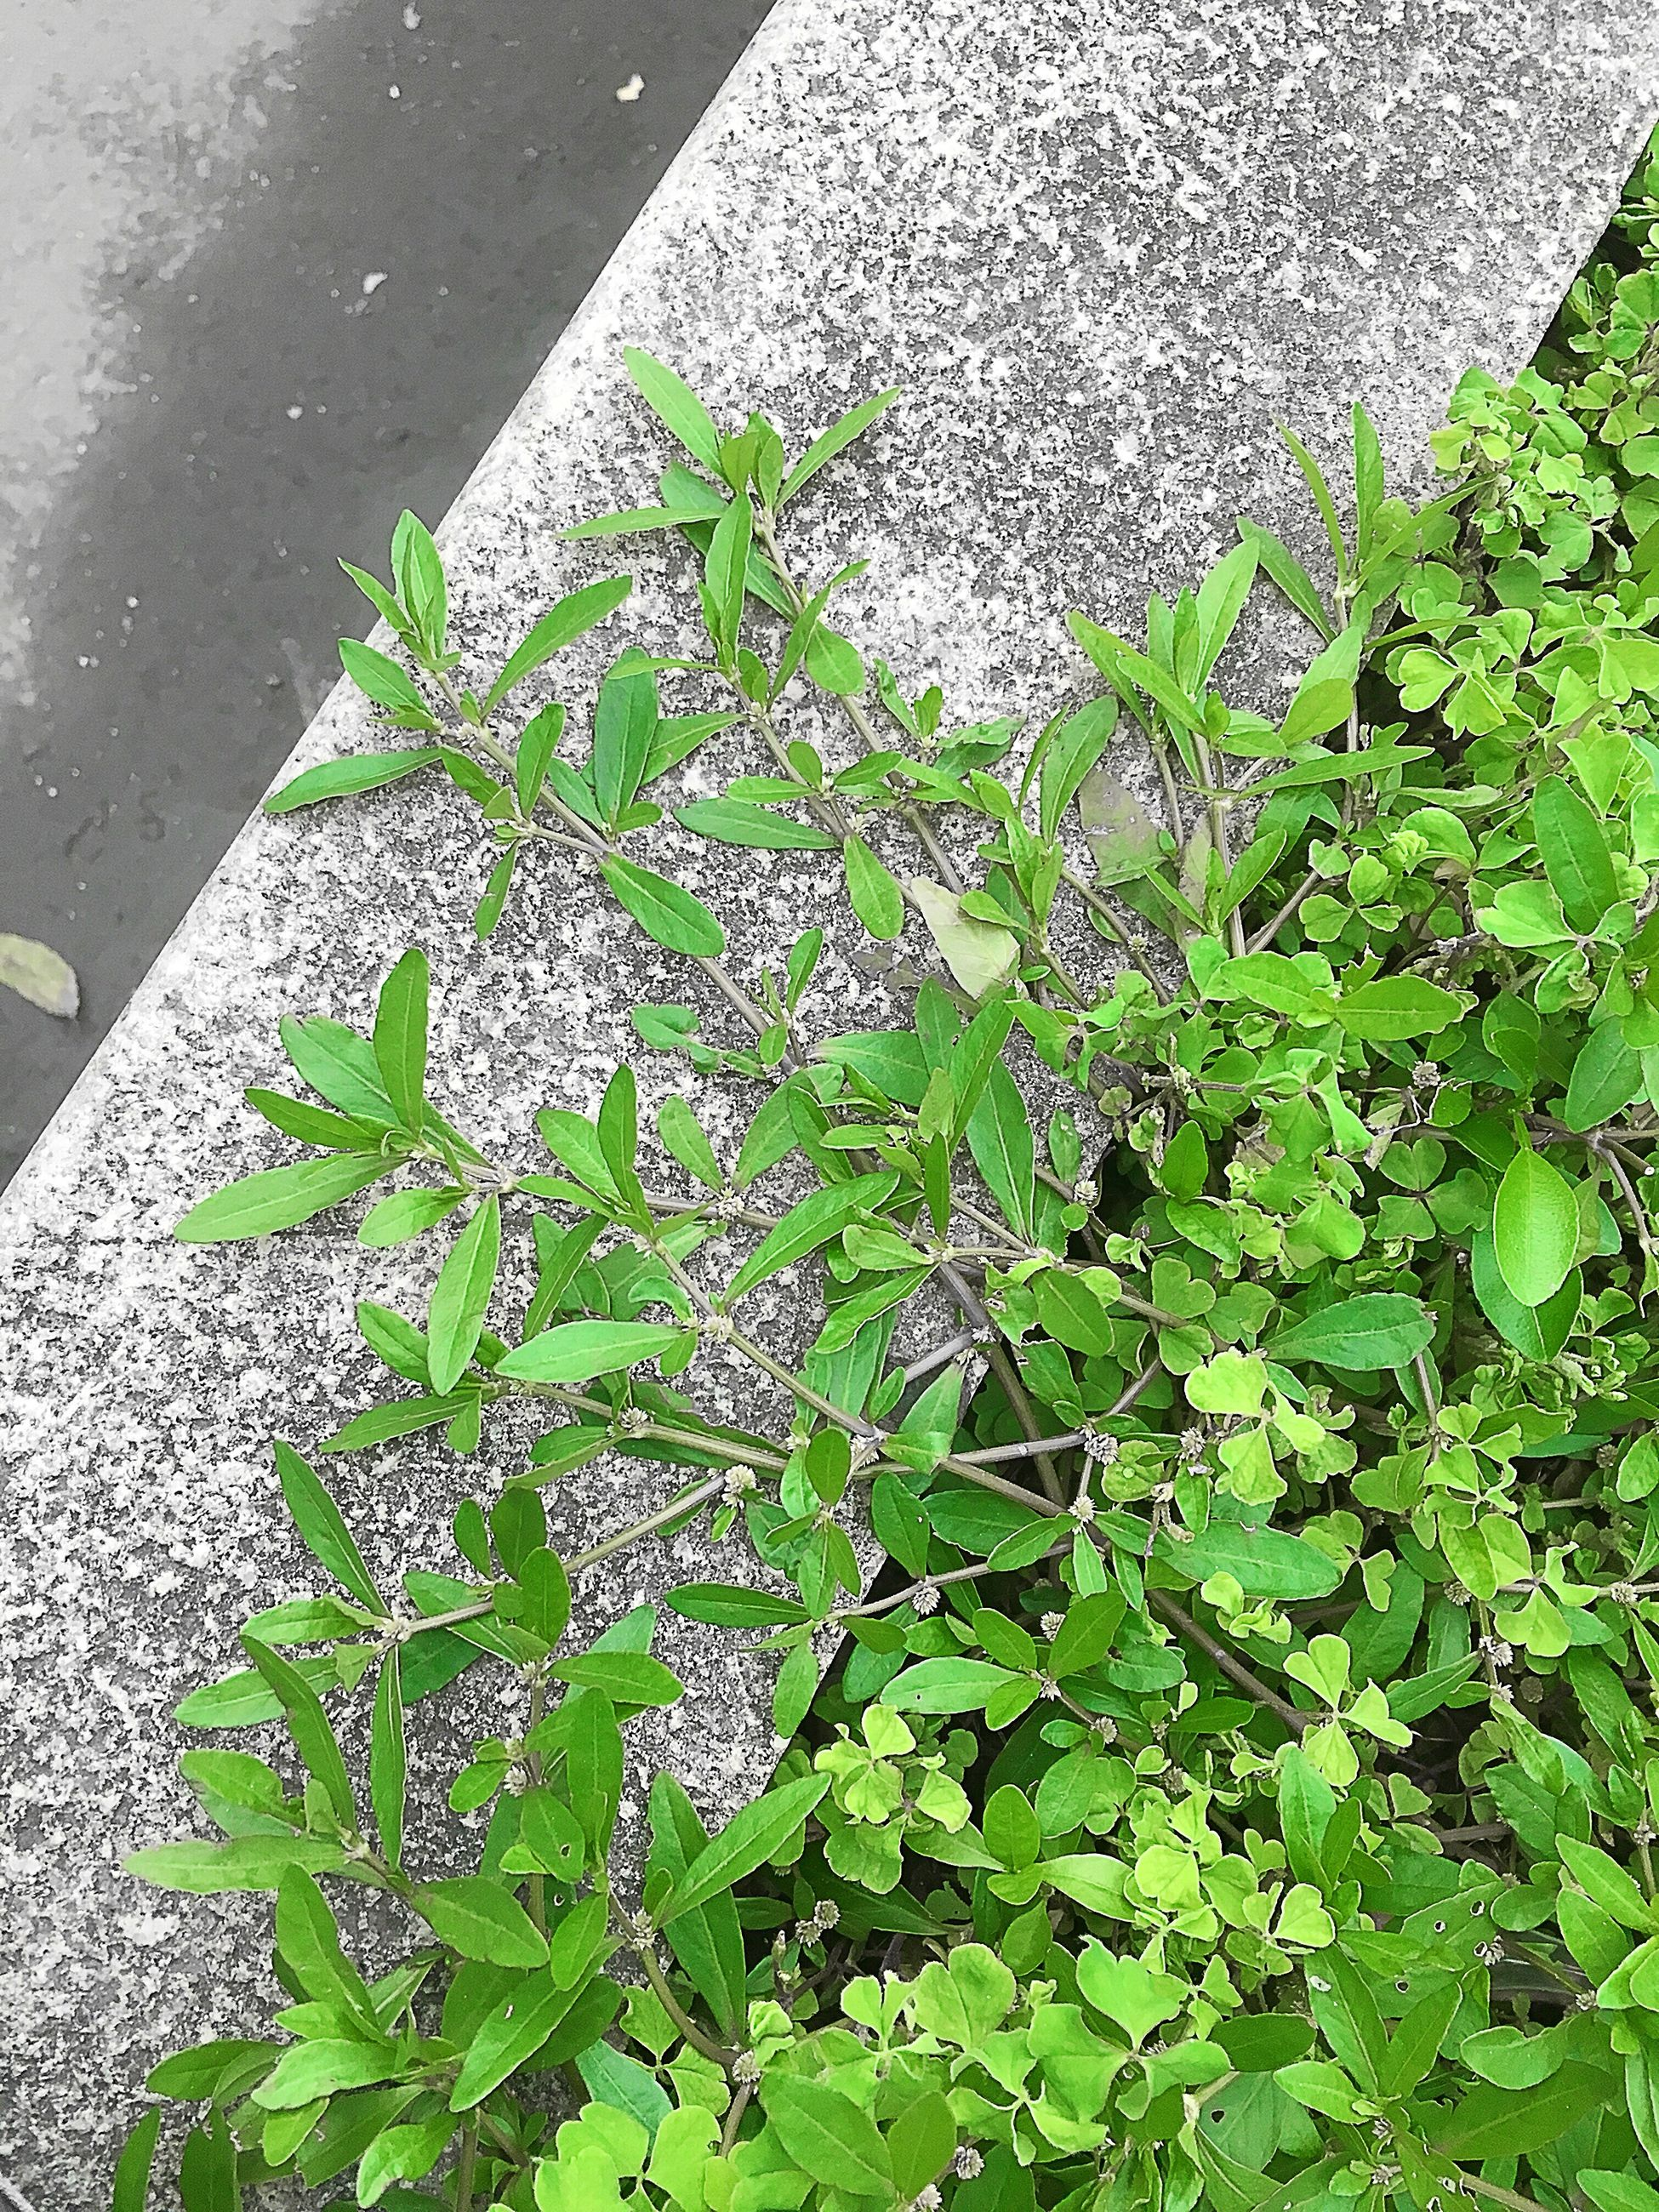 leaf, growth, plant, high angle view, green color, nature, close-up, day, outdoors, growing, wall - building feature, street, no people, flower, sunlight, freshness, ivy, built structure, fragility, building exterior